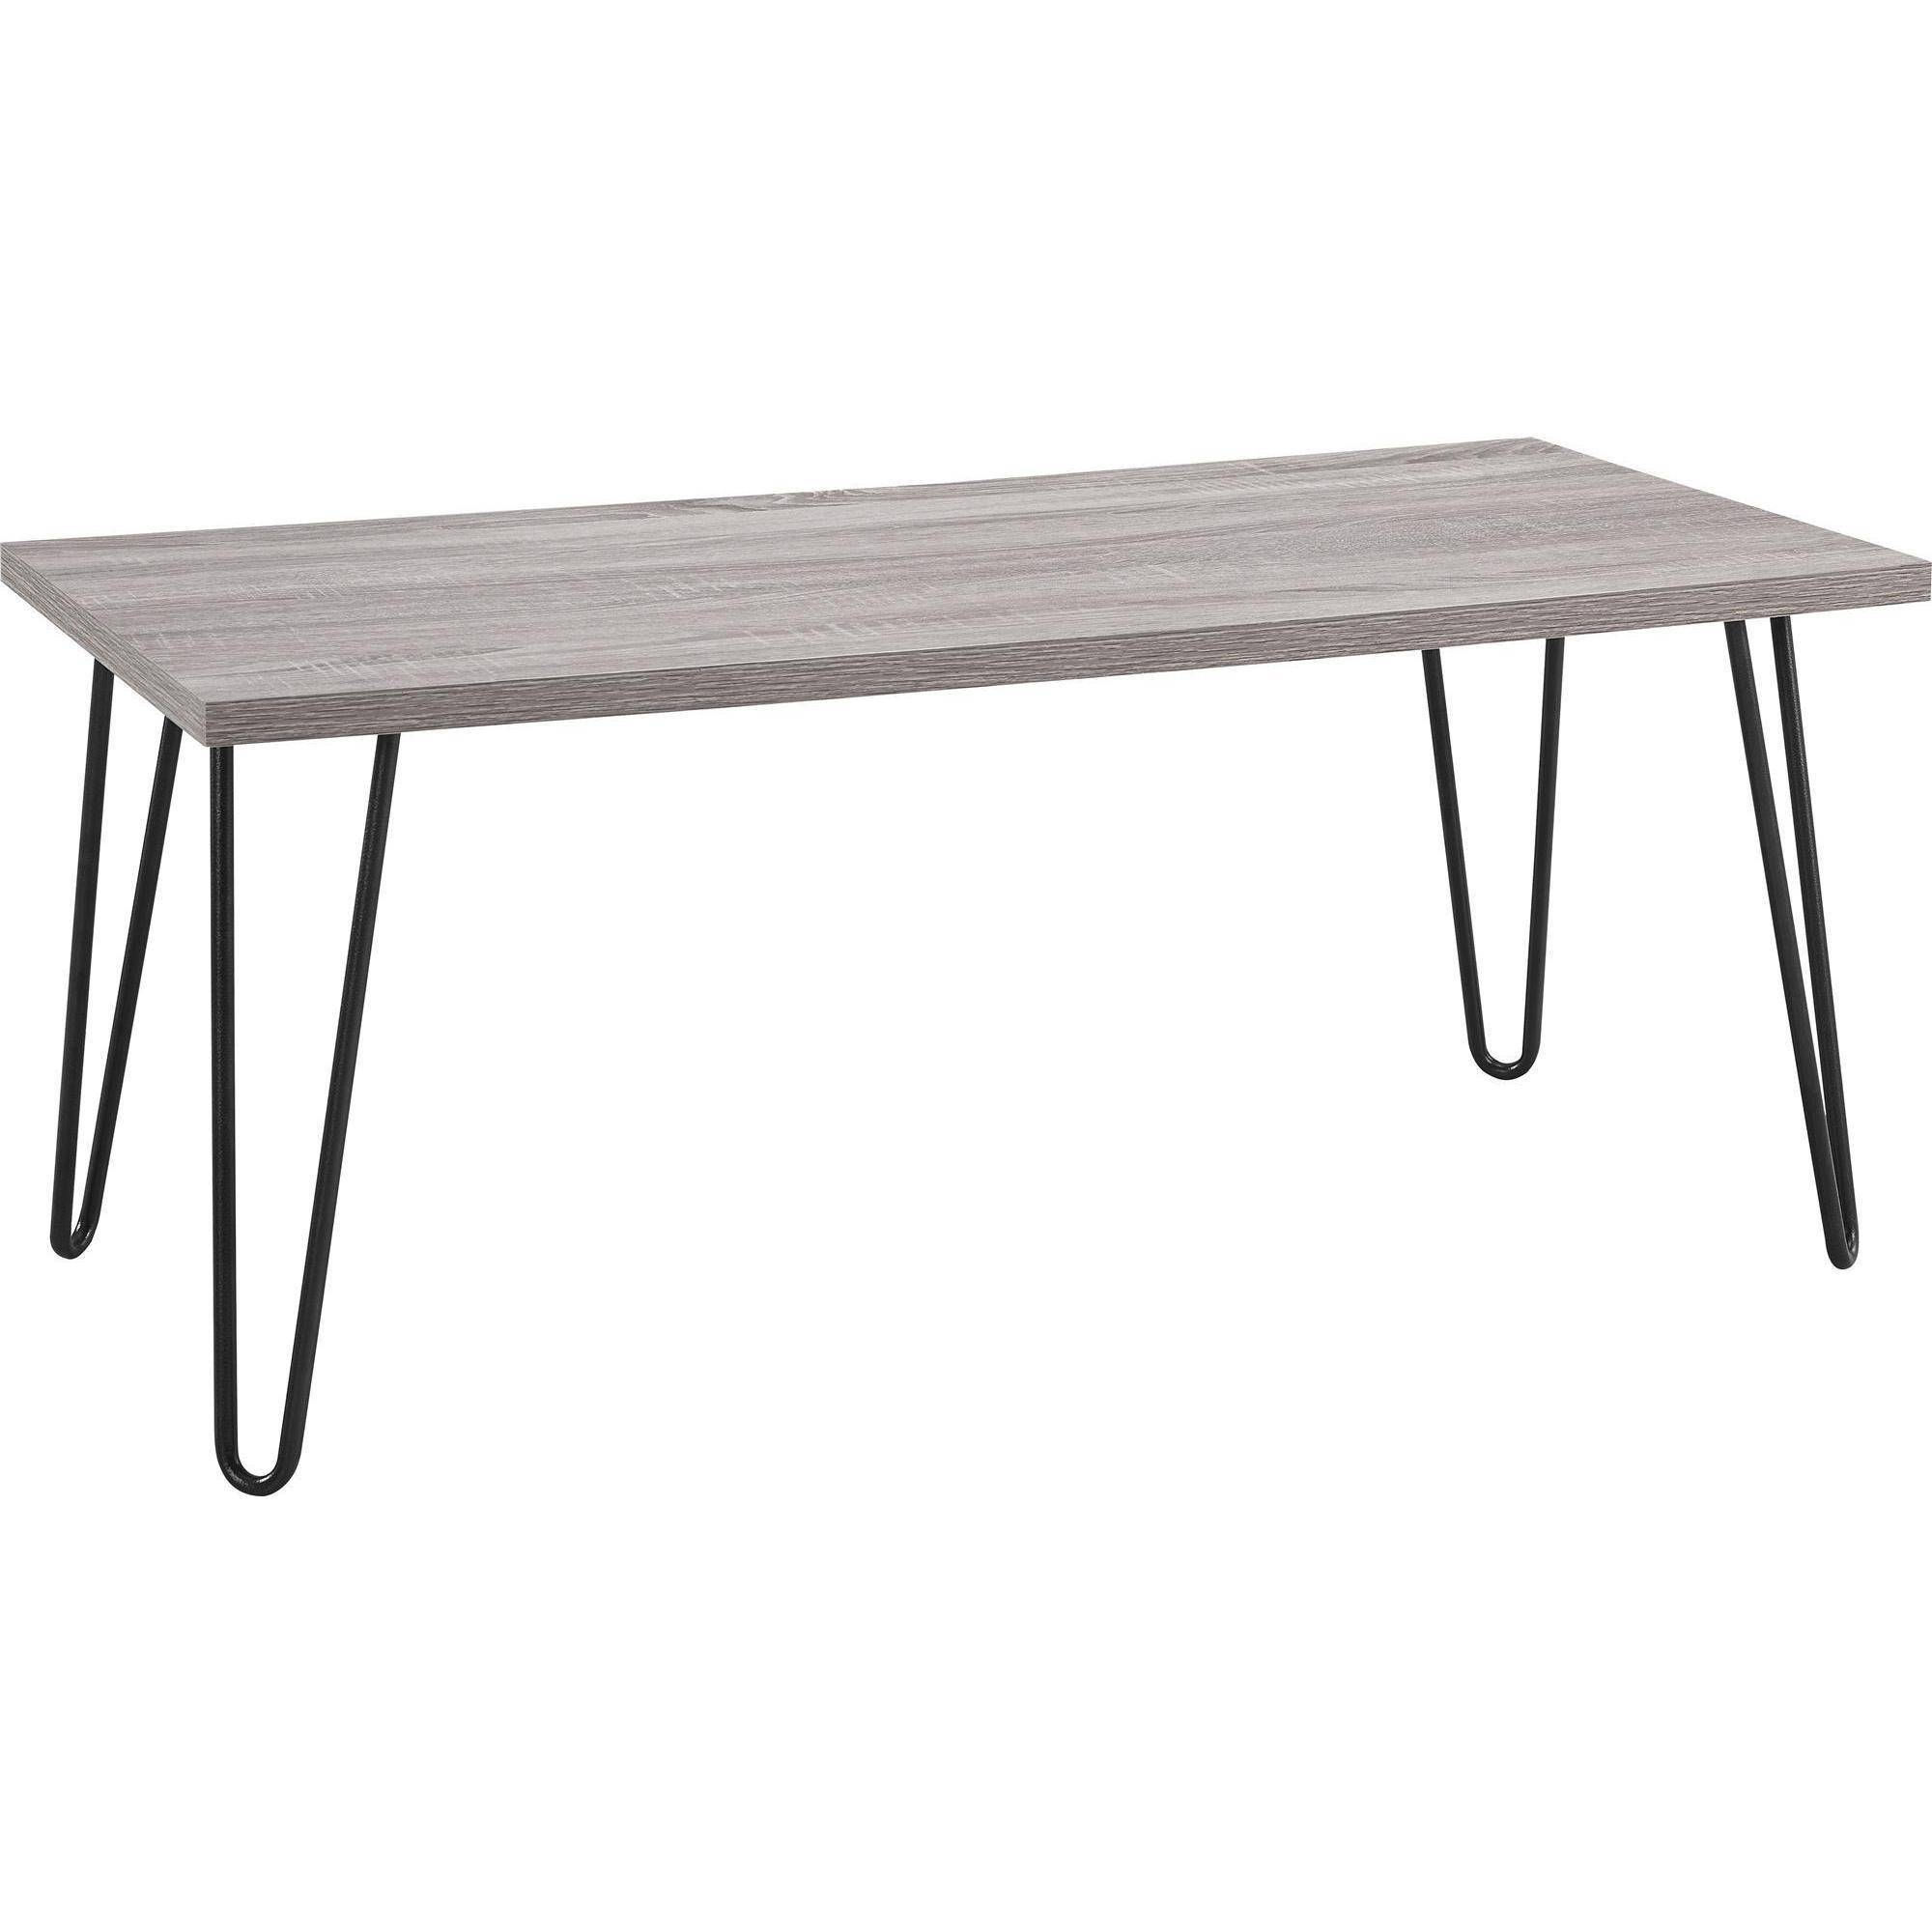 Oak Coffee Table Caring And Maintenance Tips Ameriwood Home Owen Retro Coffee Table, Distressed Gray Oak-Gunmetal Gray -  Walmart.com